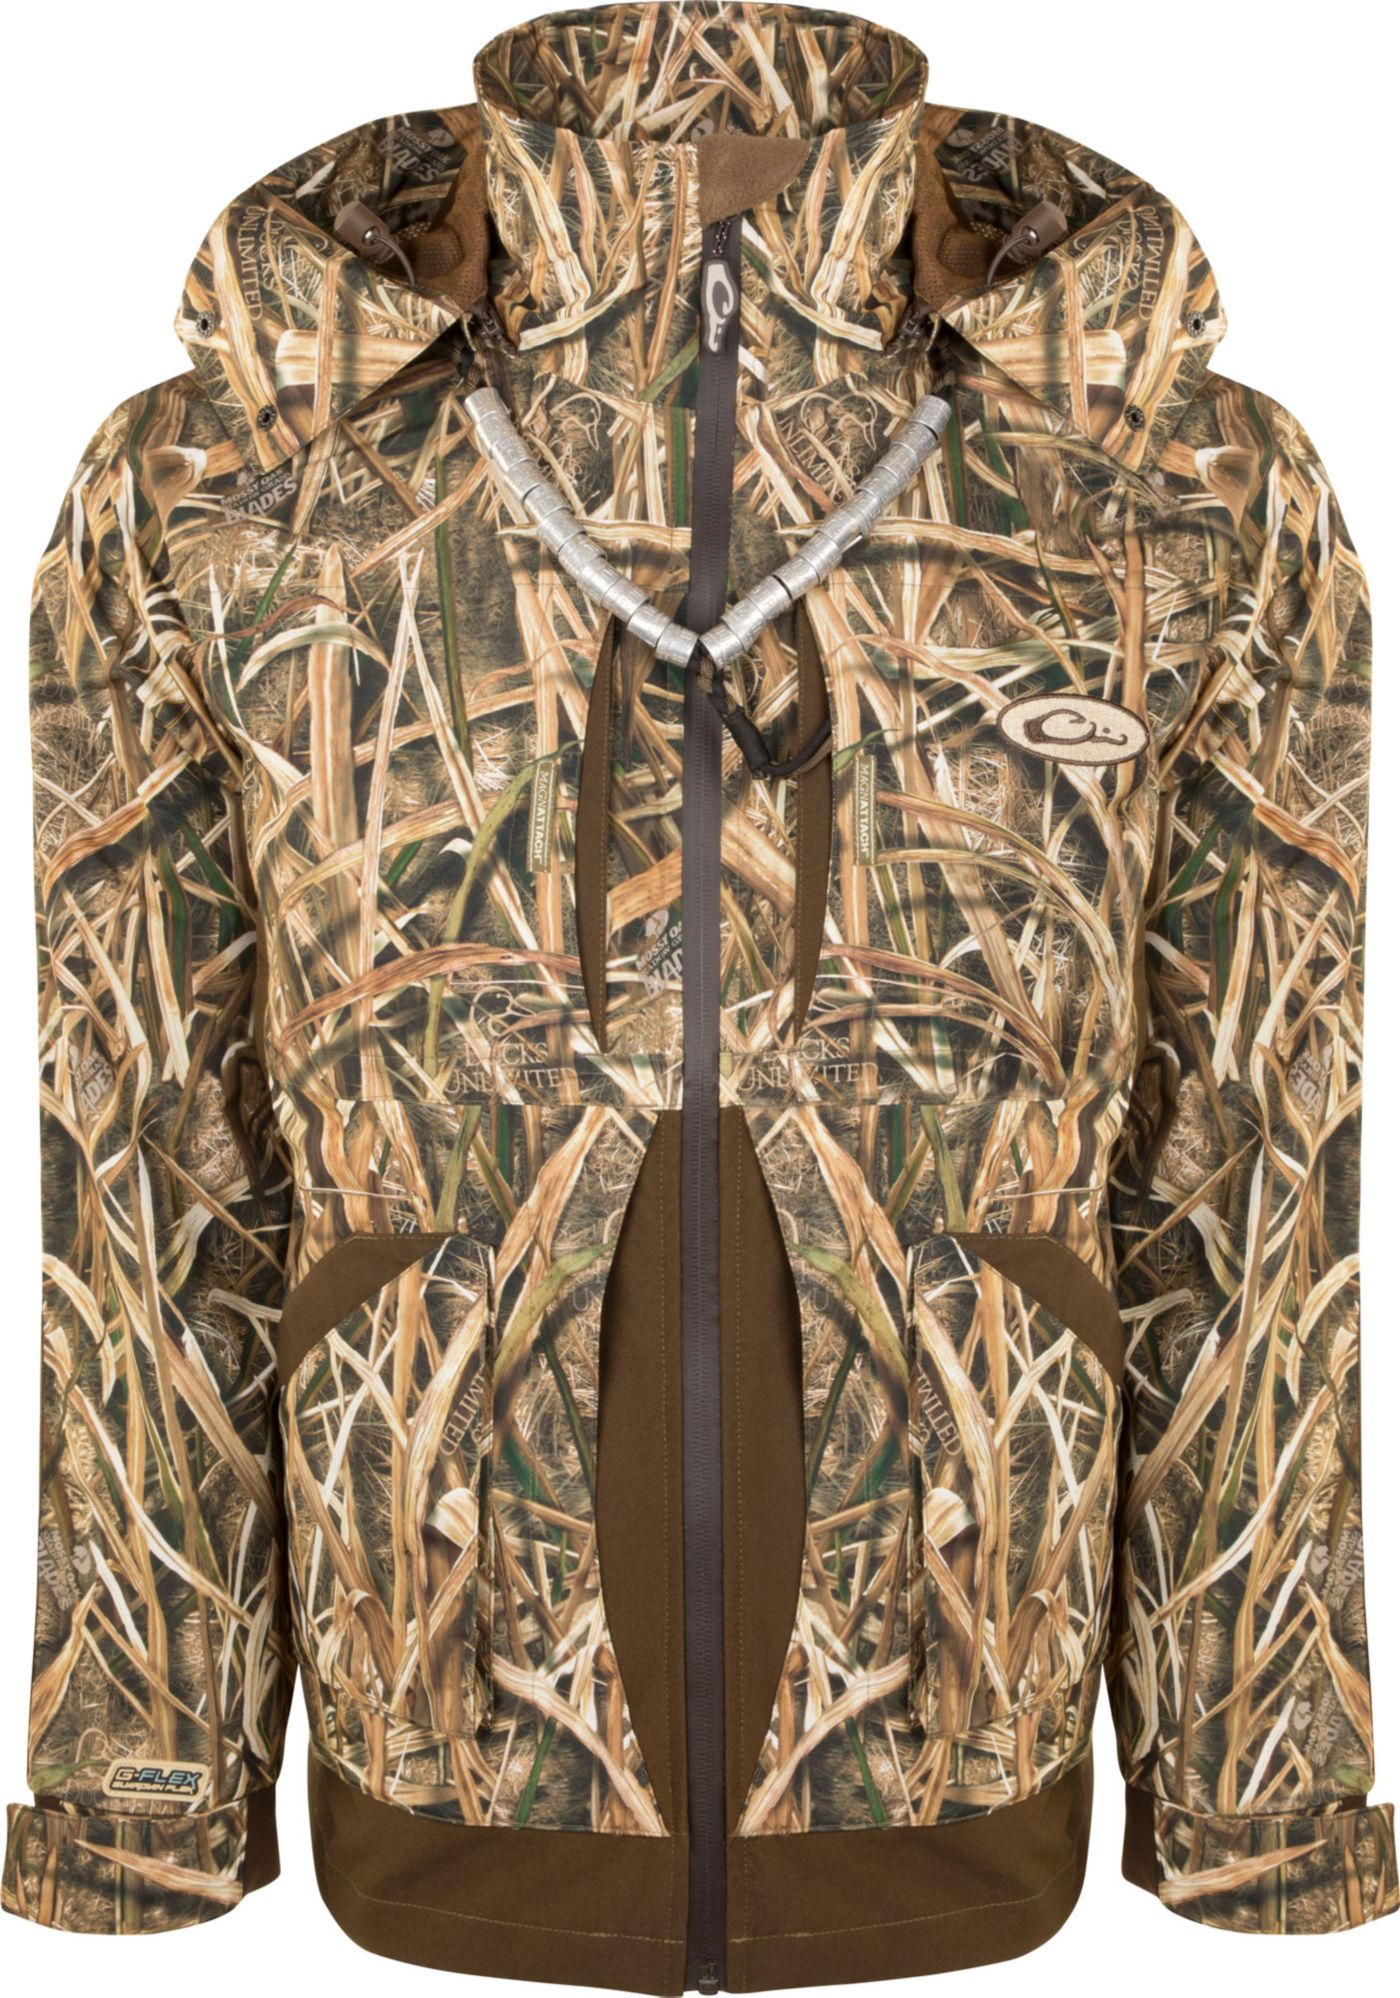 Drake Waterfowl Men's Guardian Flex Full Zip Shell Weight Hunting Jacket